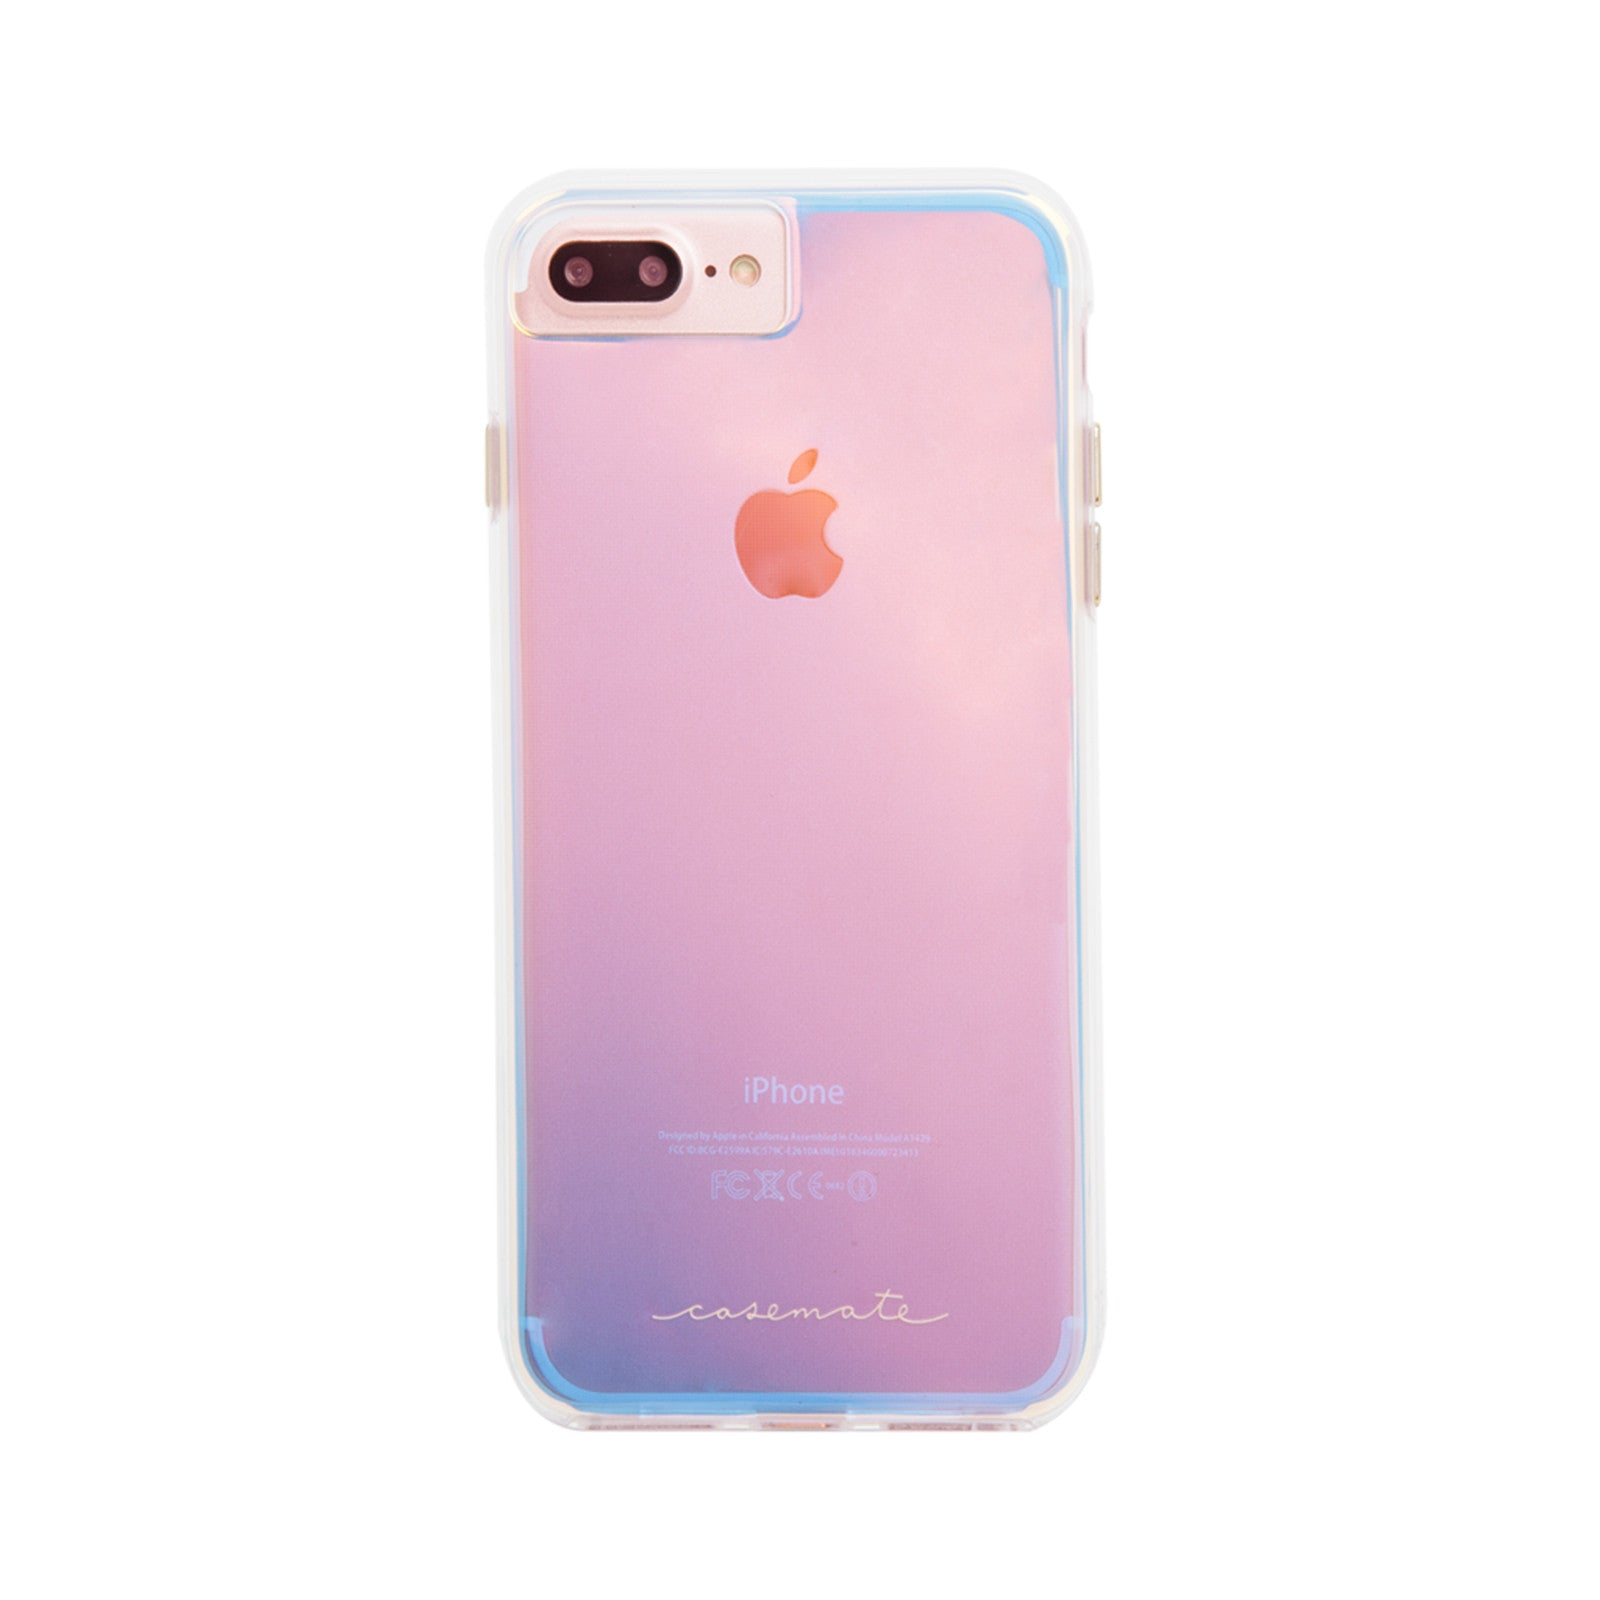 Naked tough case for iphone 6 pics 539